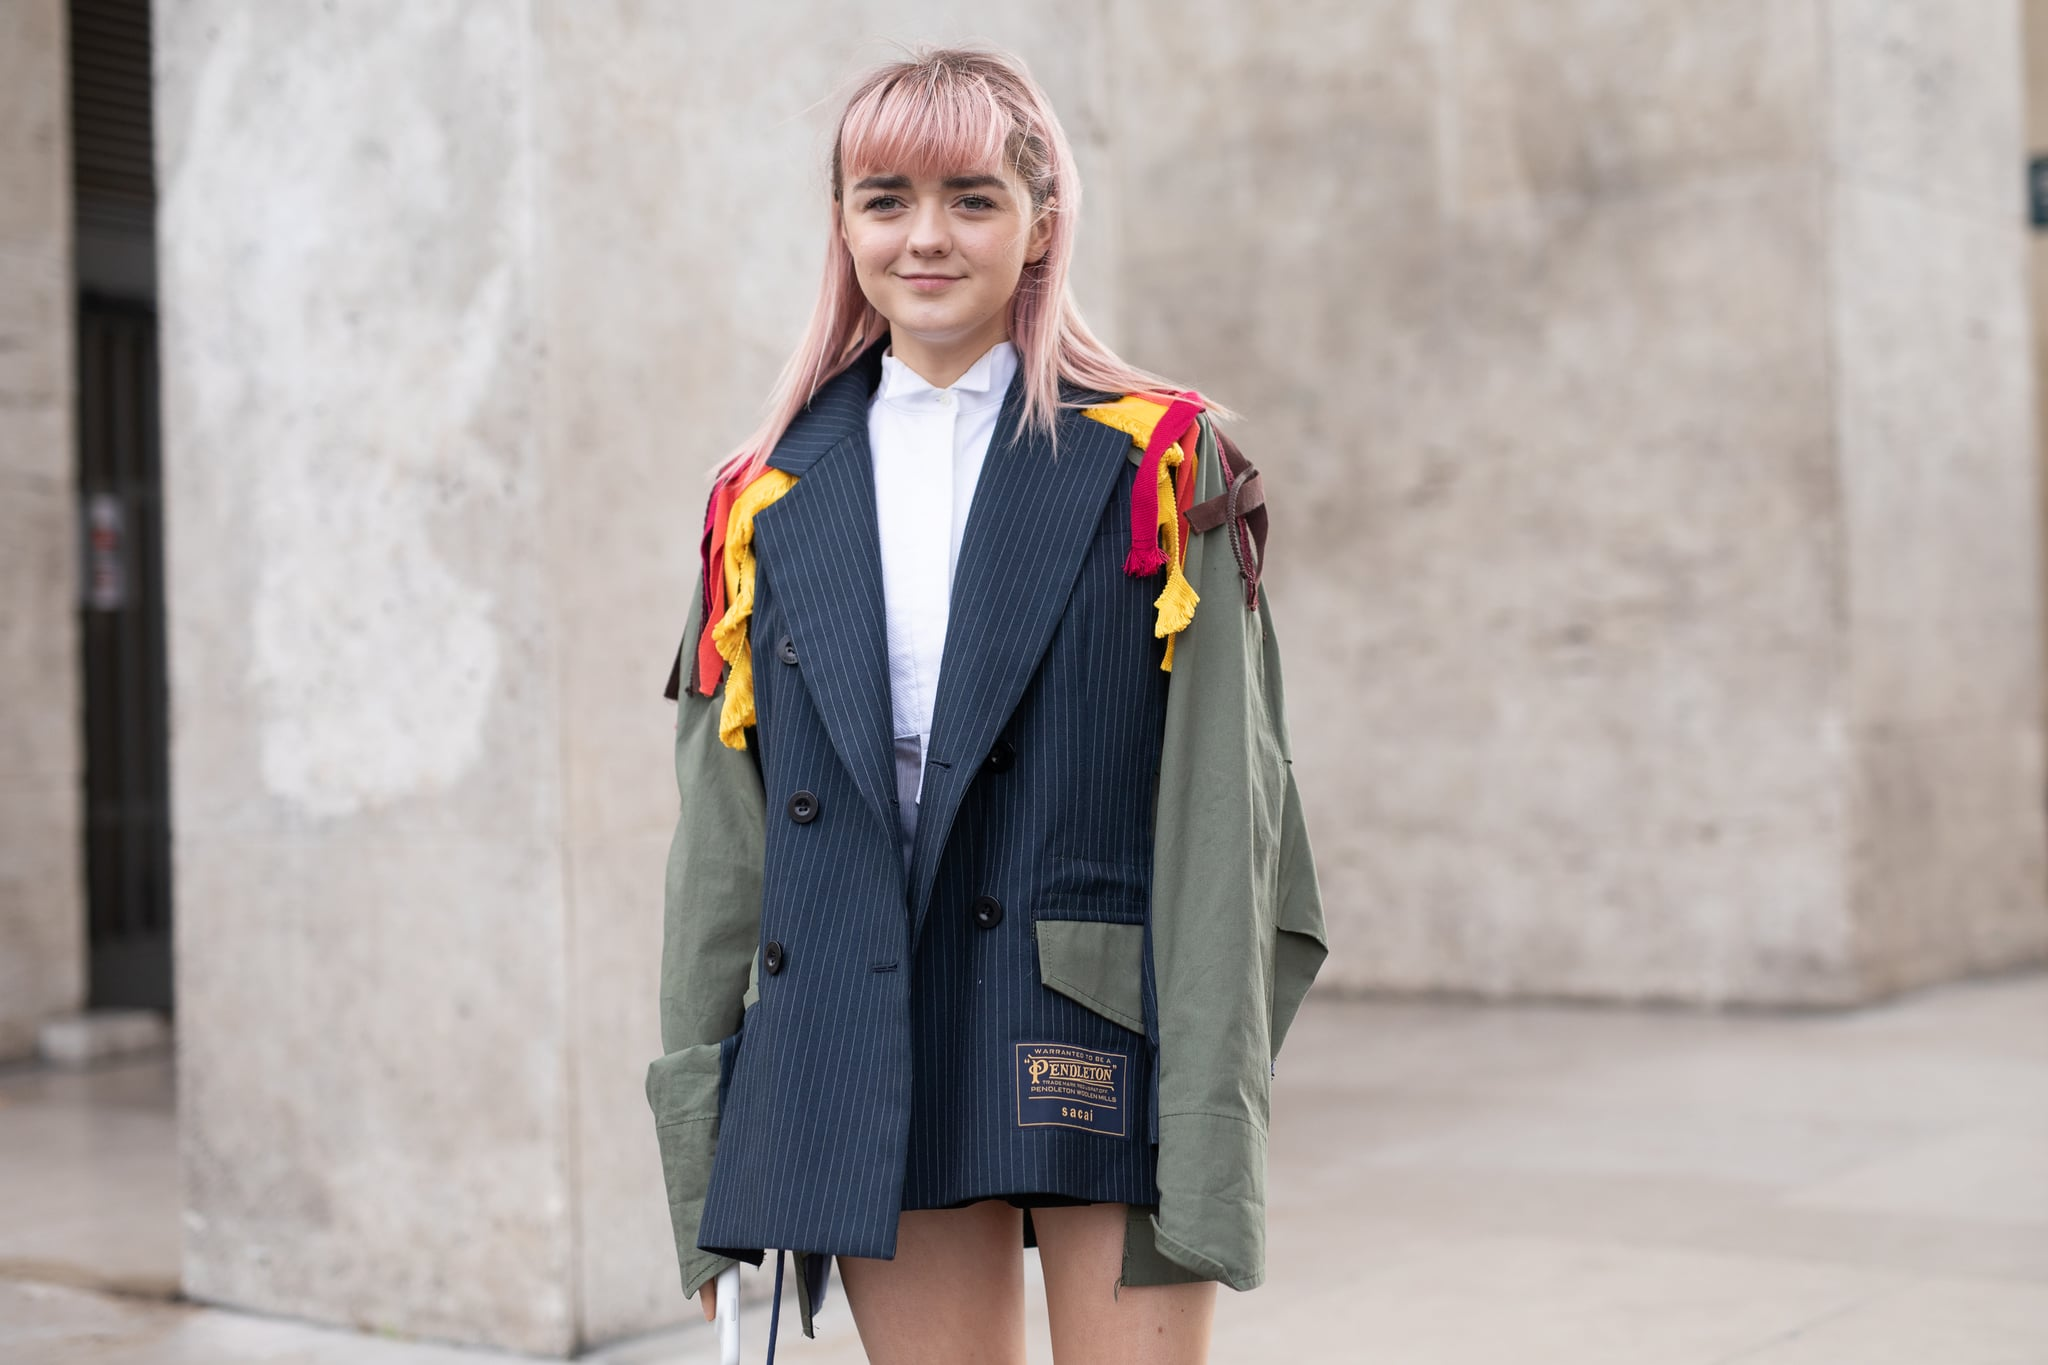 PARIS, FRANCE - MARCH 04: Maisie Williams is seen on the street attending SACAI during Paris Fashion Week AW19 wearing Sacai blazer on March 04, 2019 in Paris, France. (Photo by Matthew Sperzel/Getty Images)